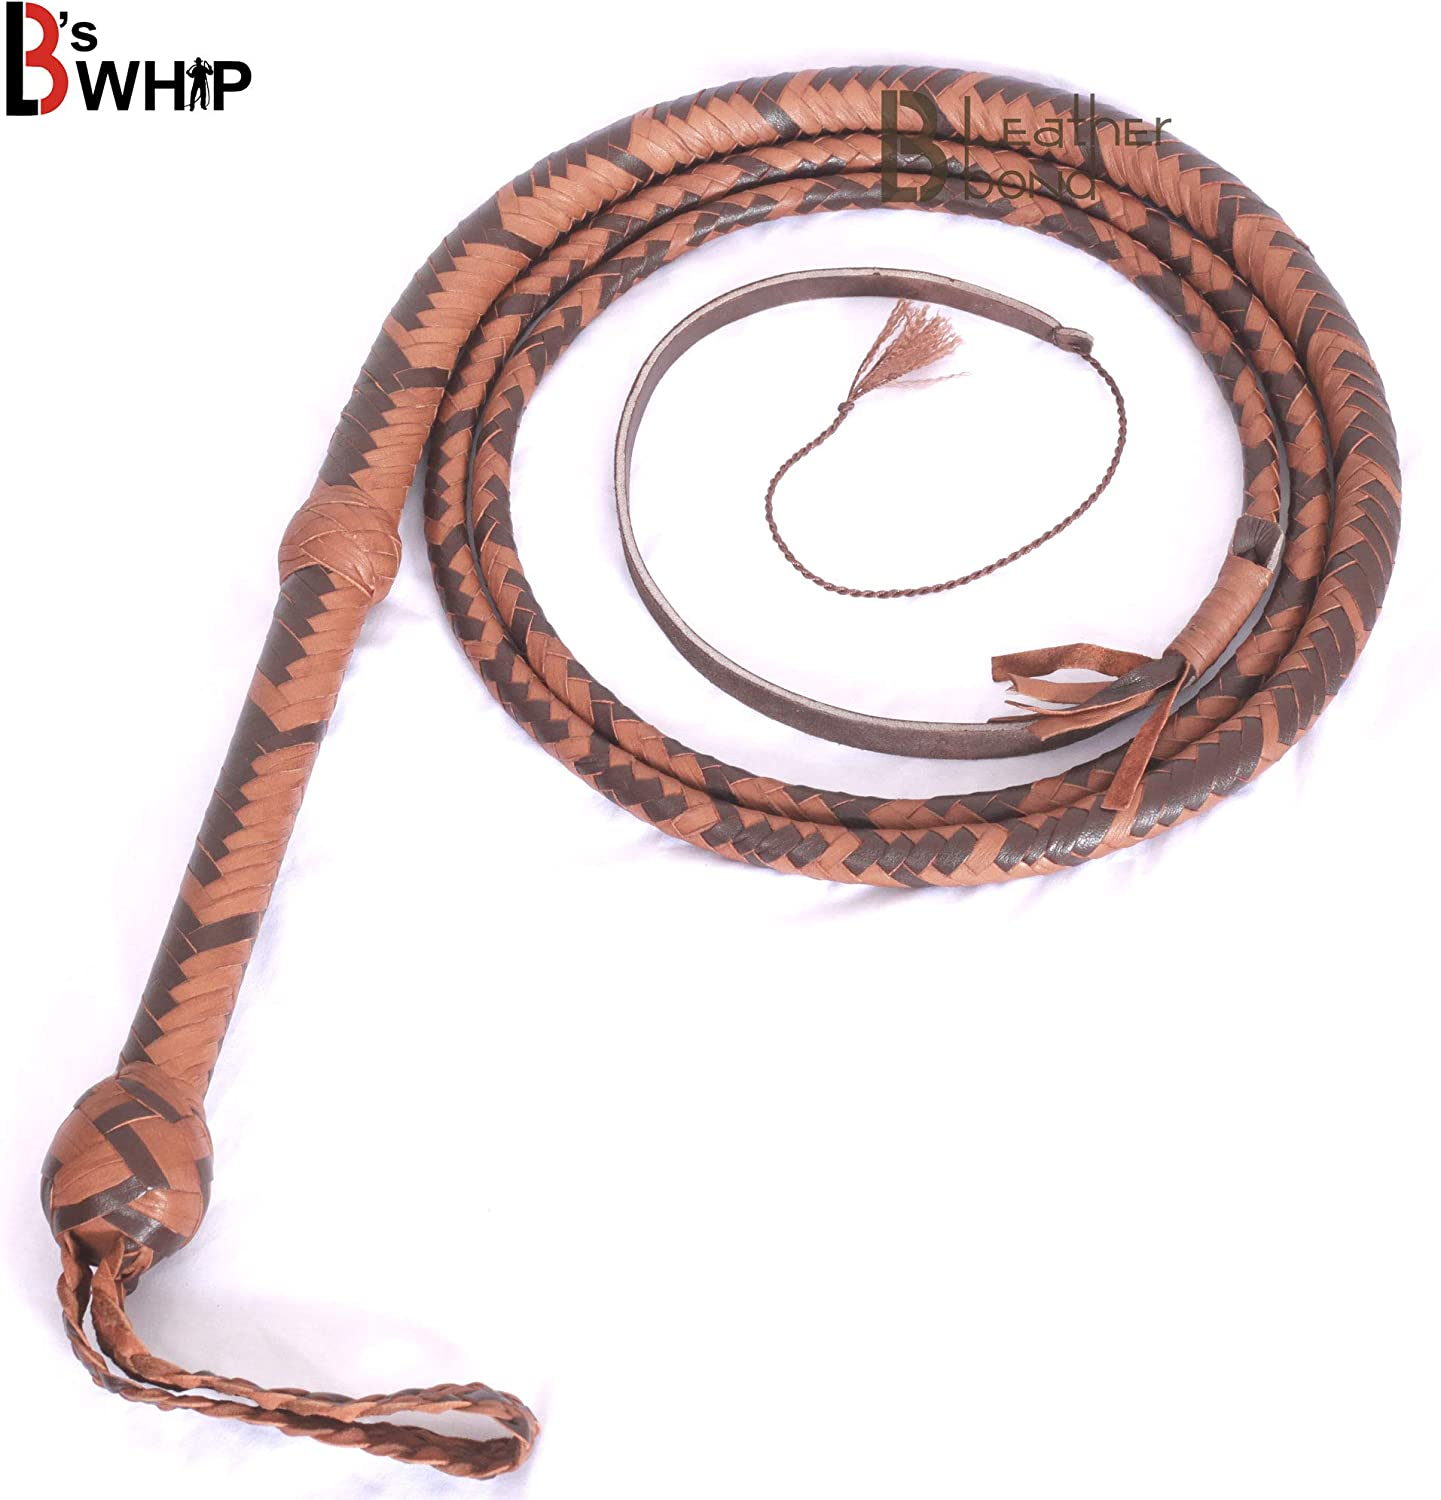 BULLWHIP DARK BROWN HAND MADE REAL COWHIDE LEATHER 10 FOOT BULL WHIP 8 PLAIT